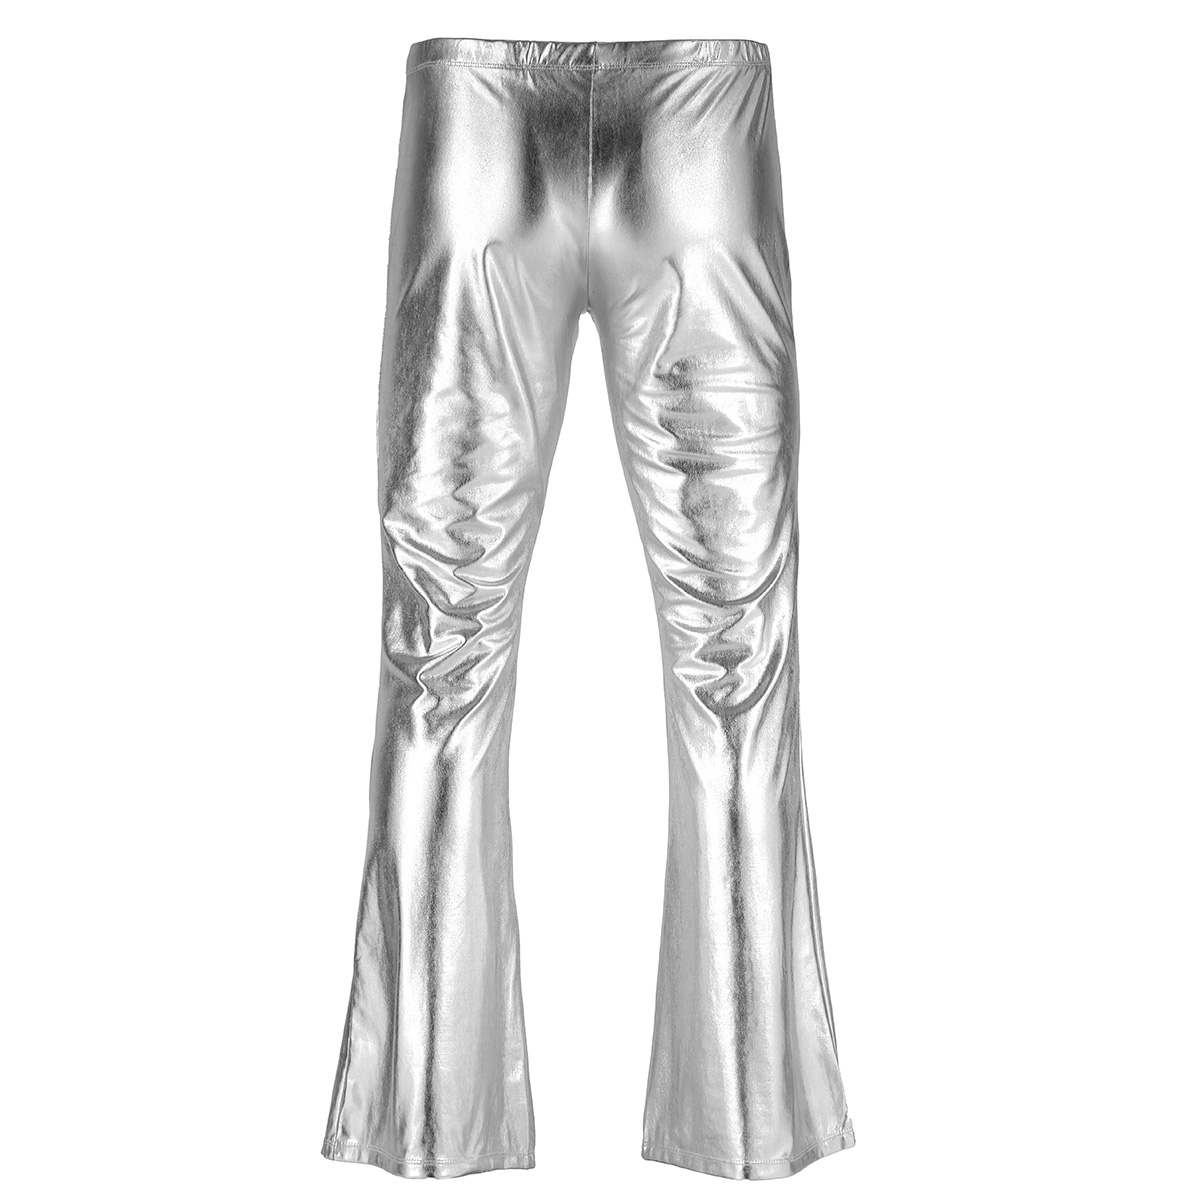 Adult Mens Moto Punk Style Party Pants Shiny Metallic Disco Pants with Bell Bottom Flared Long Pants Dude Costume Trousers 23